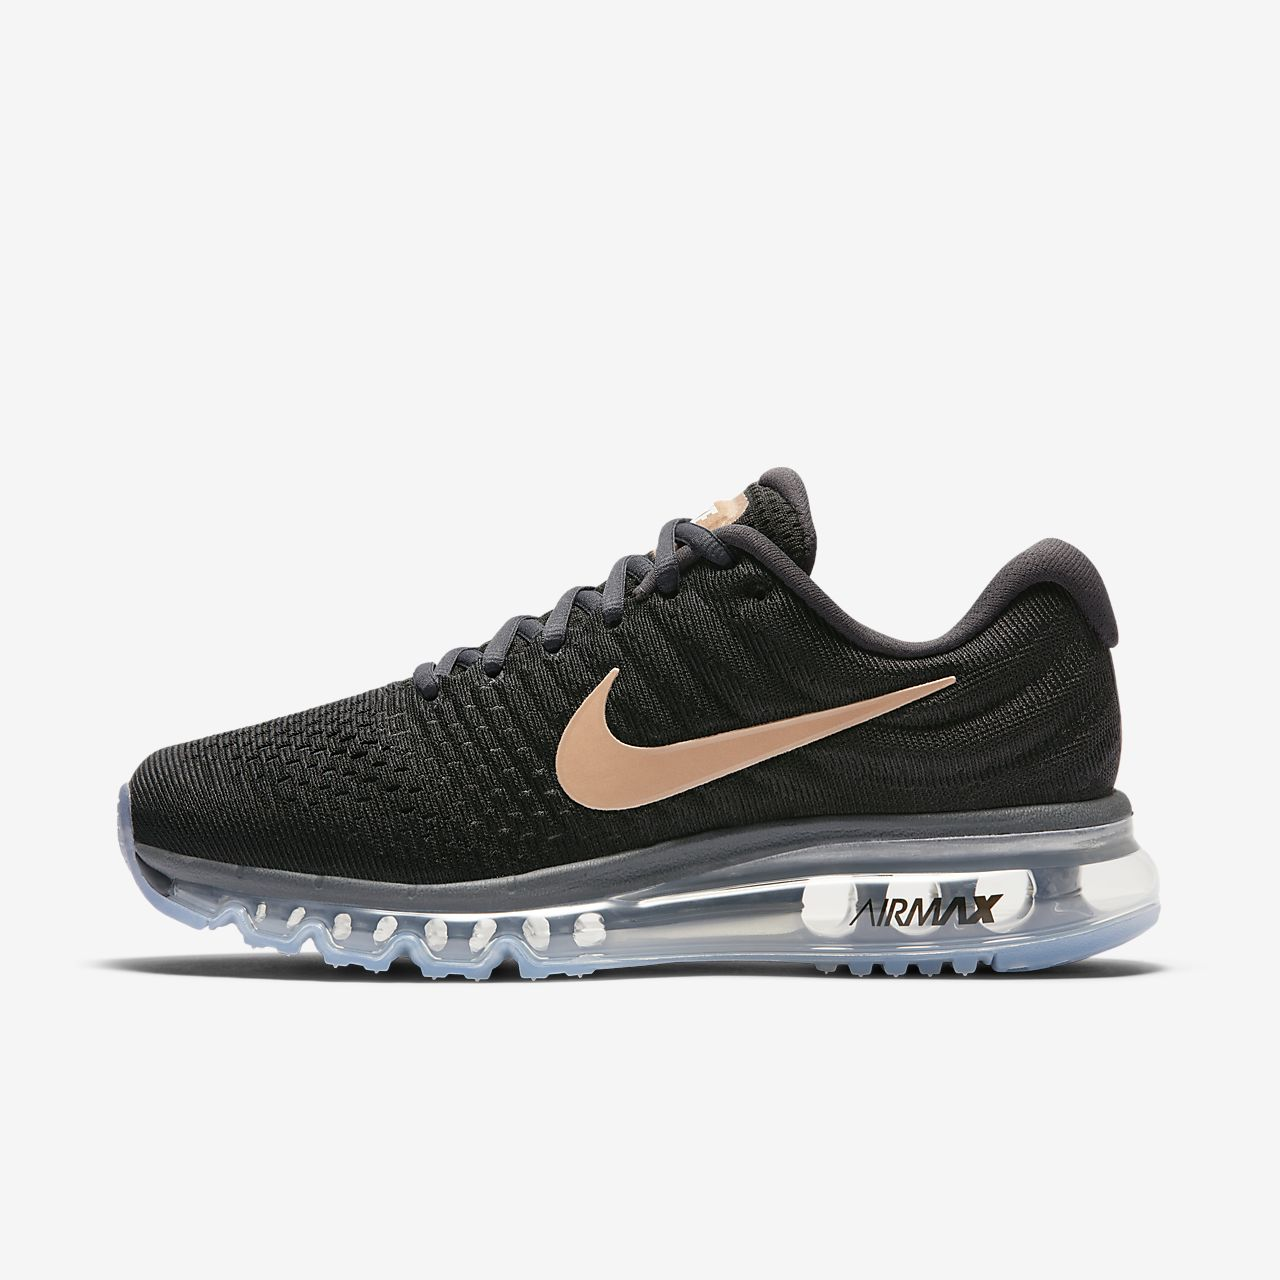 nike air max wit dames 2017